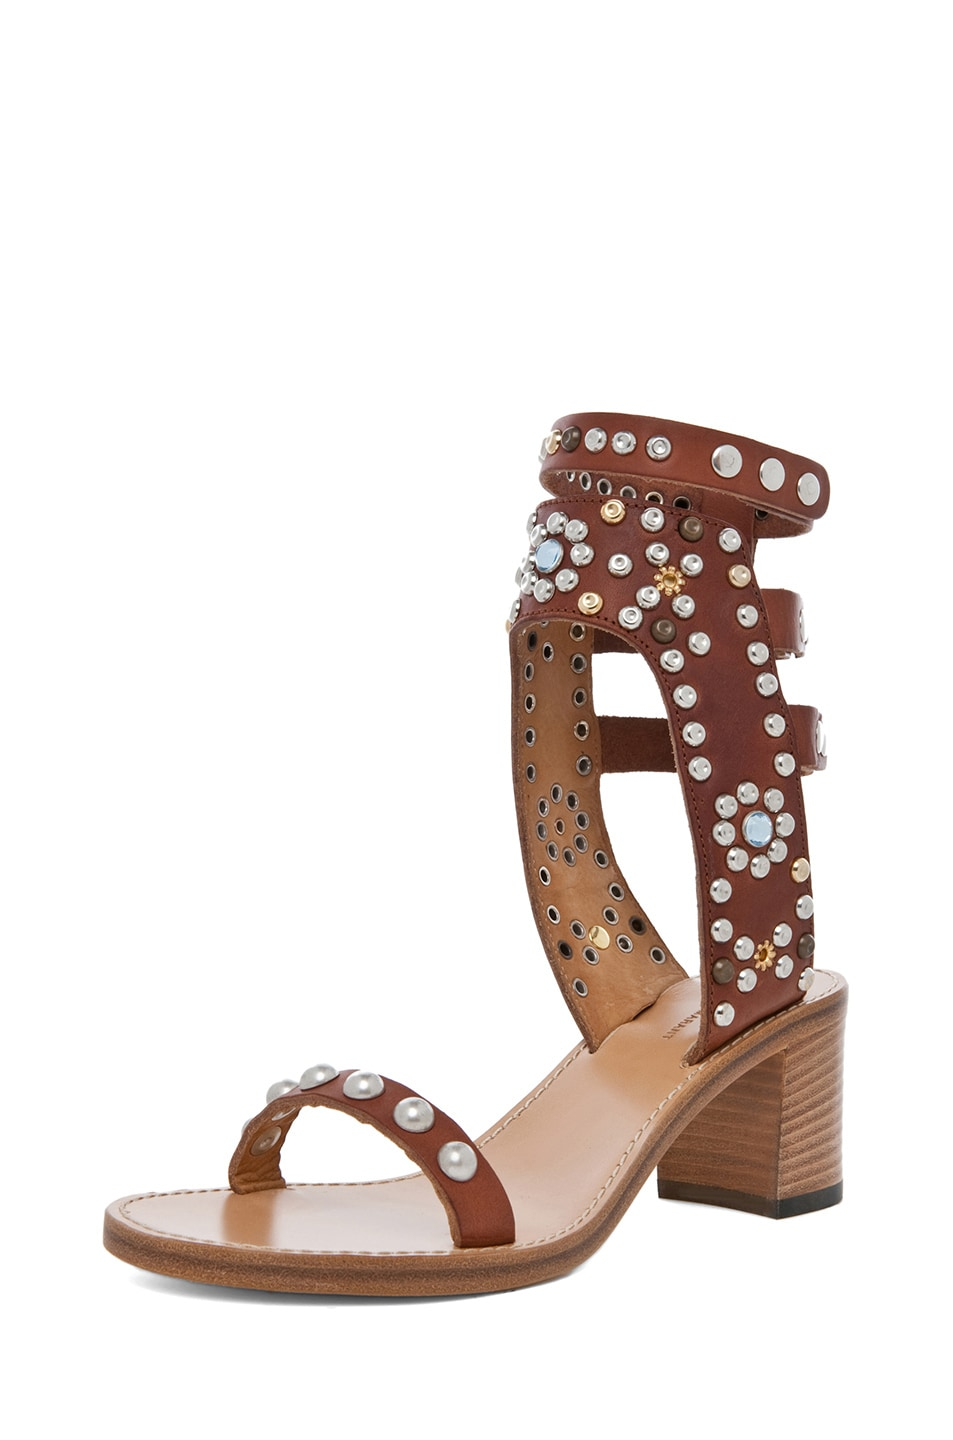 Image 2 of Isabel Marant Caroll Strassed and Studded Sandal in Cognac